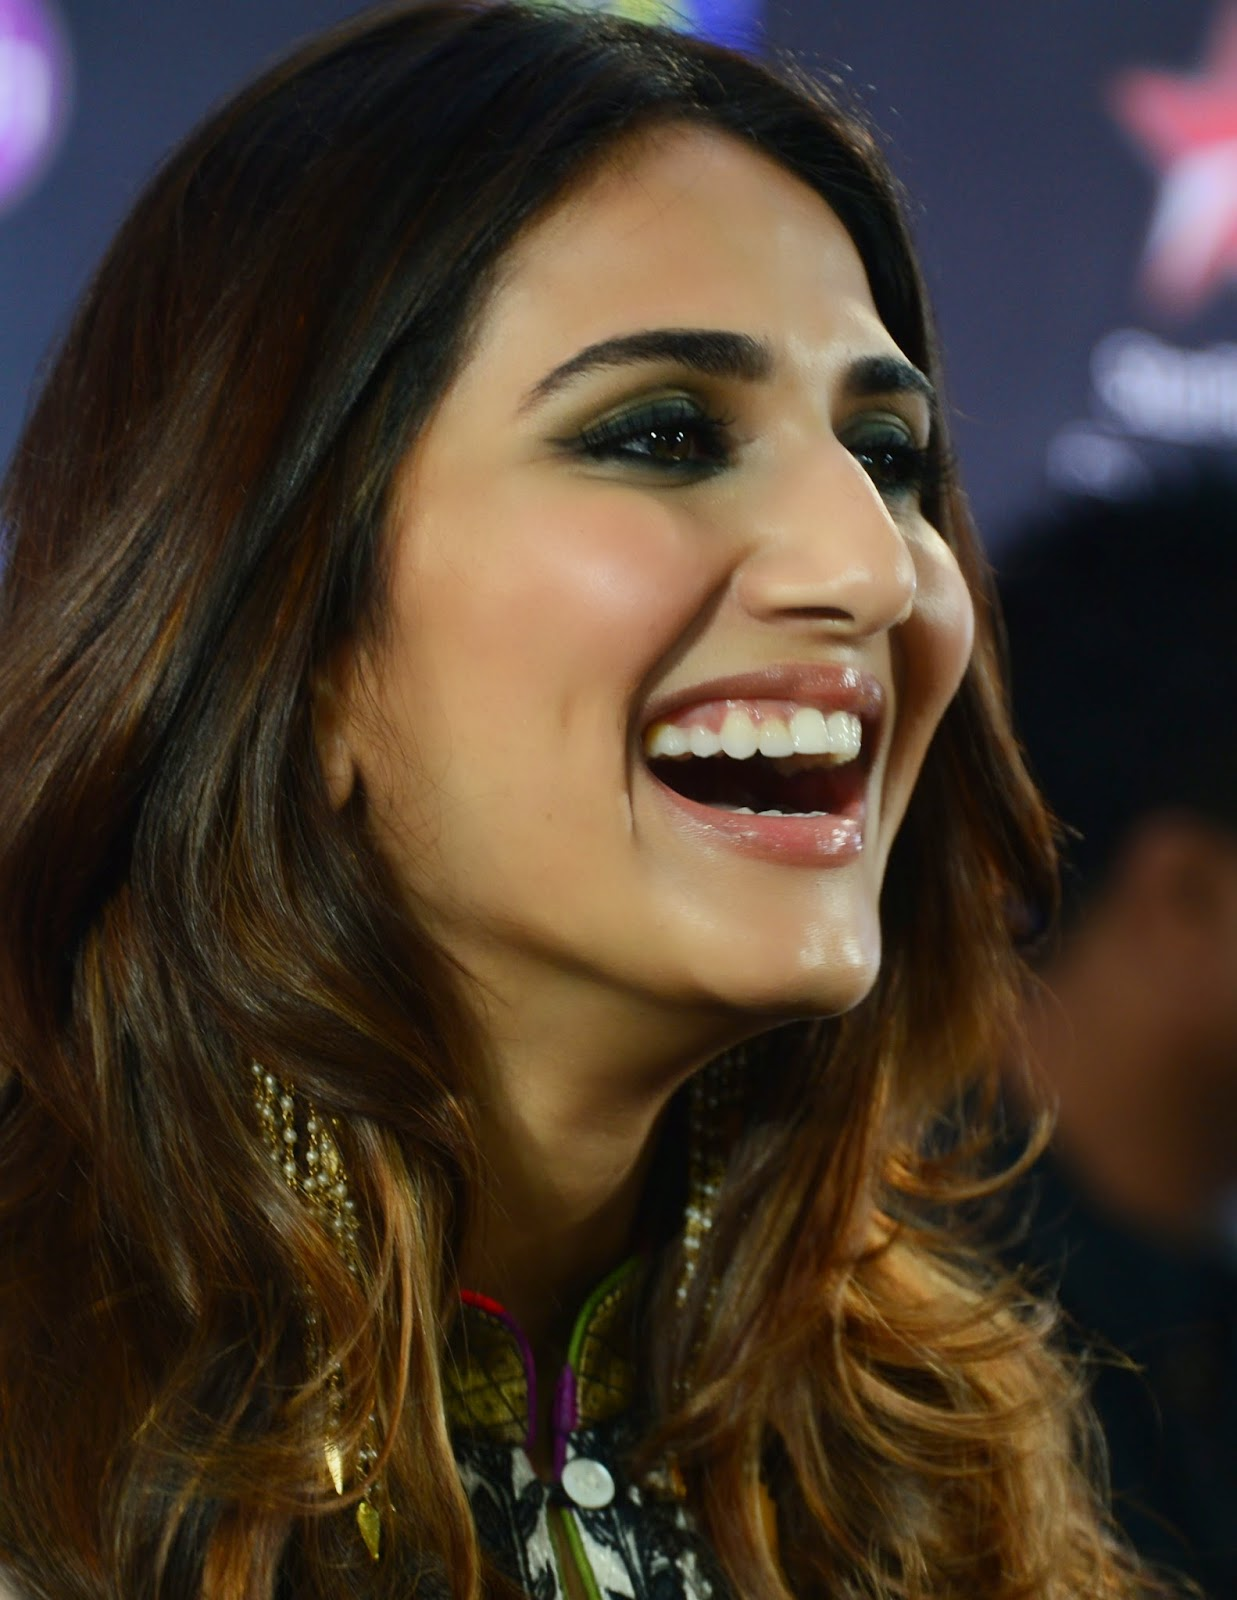 2014 IIFA Awards, Actress, Award Show, Bollywood, Bollywood actress, Entertainment, IIFA, IIFA Awards, IIFA Pictures, IIFA Rocks, International Indian Film Academy, Tampa, Vaani Kapoor, Vaani Kapoor Pictures,